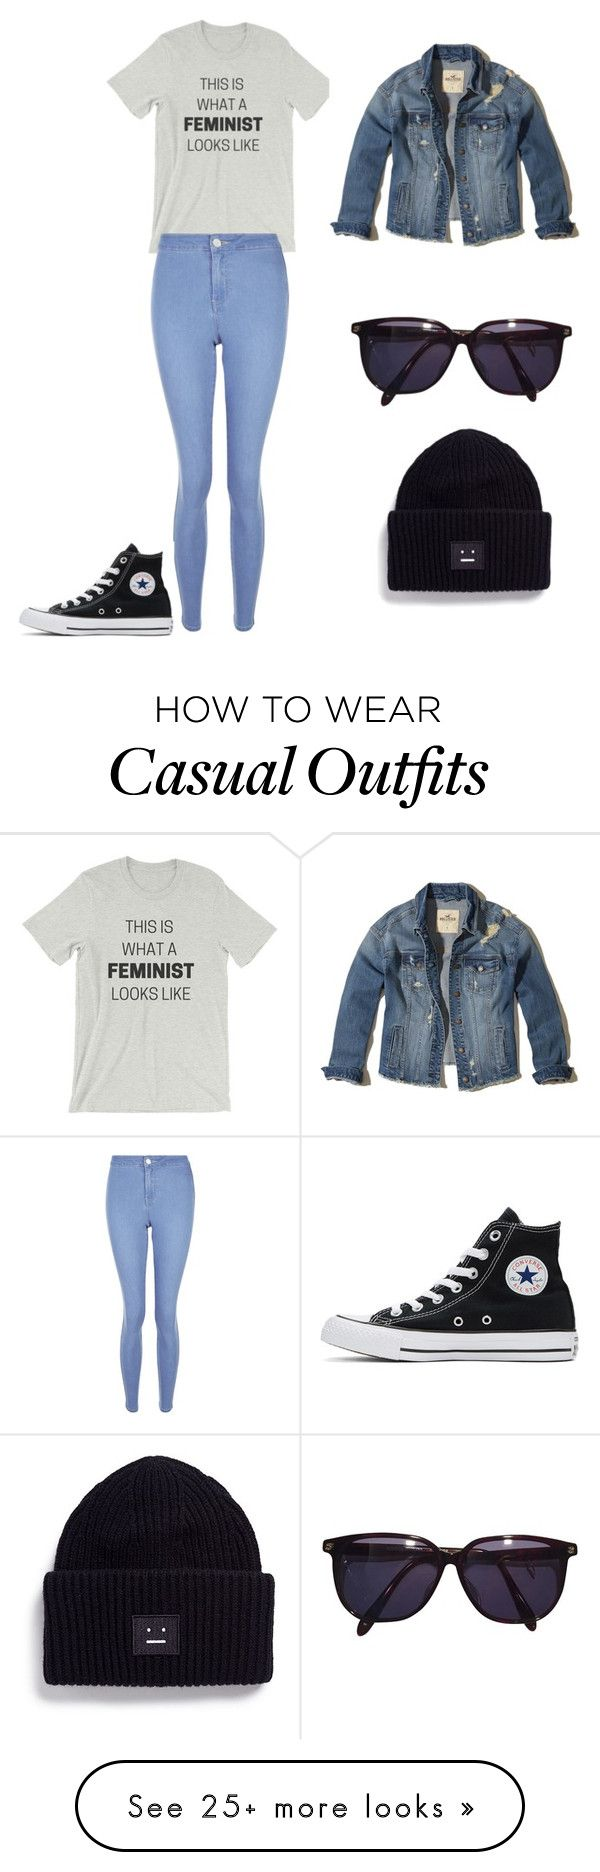 """""""Casual feminist"""" by nya-dreambig on Polyvore featuring New Look, Converse, Hollister Co., Sonia Rykiel and Acne Studios"""